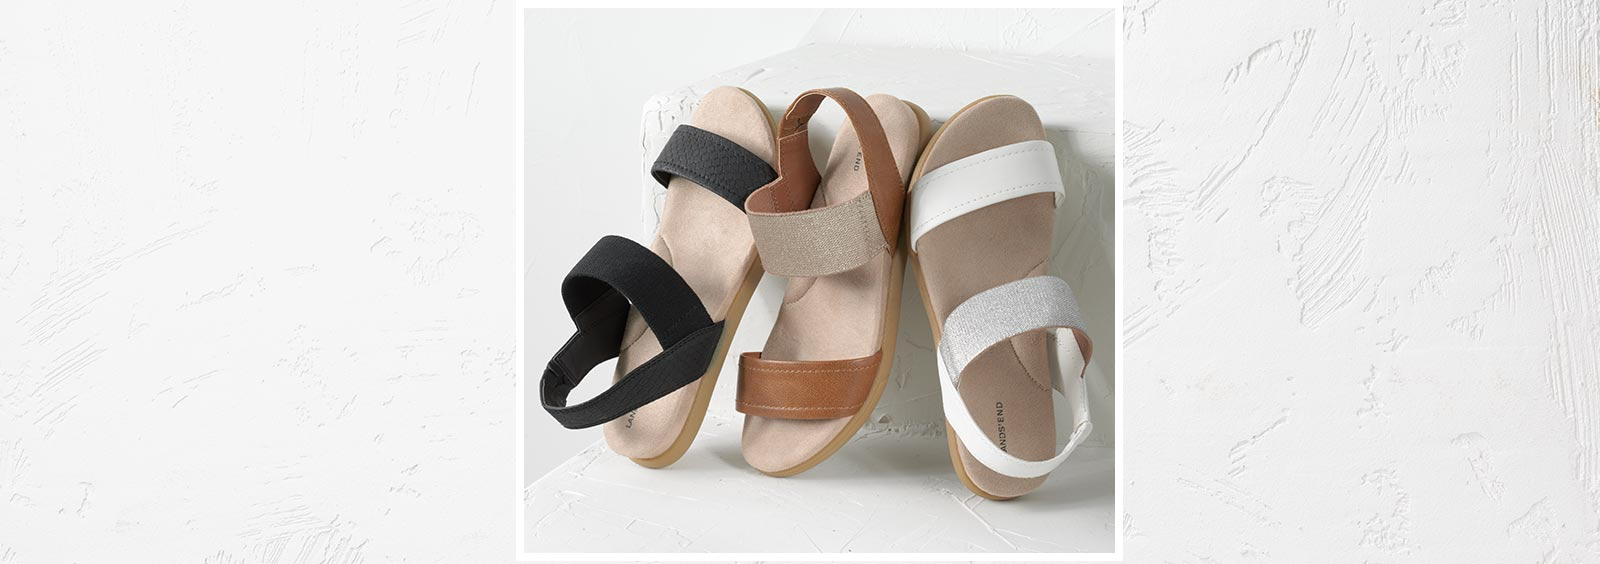 Different Sandal Styles for Different Outfits